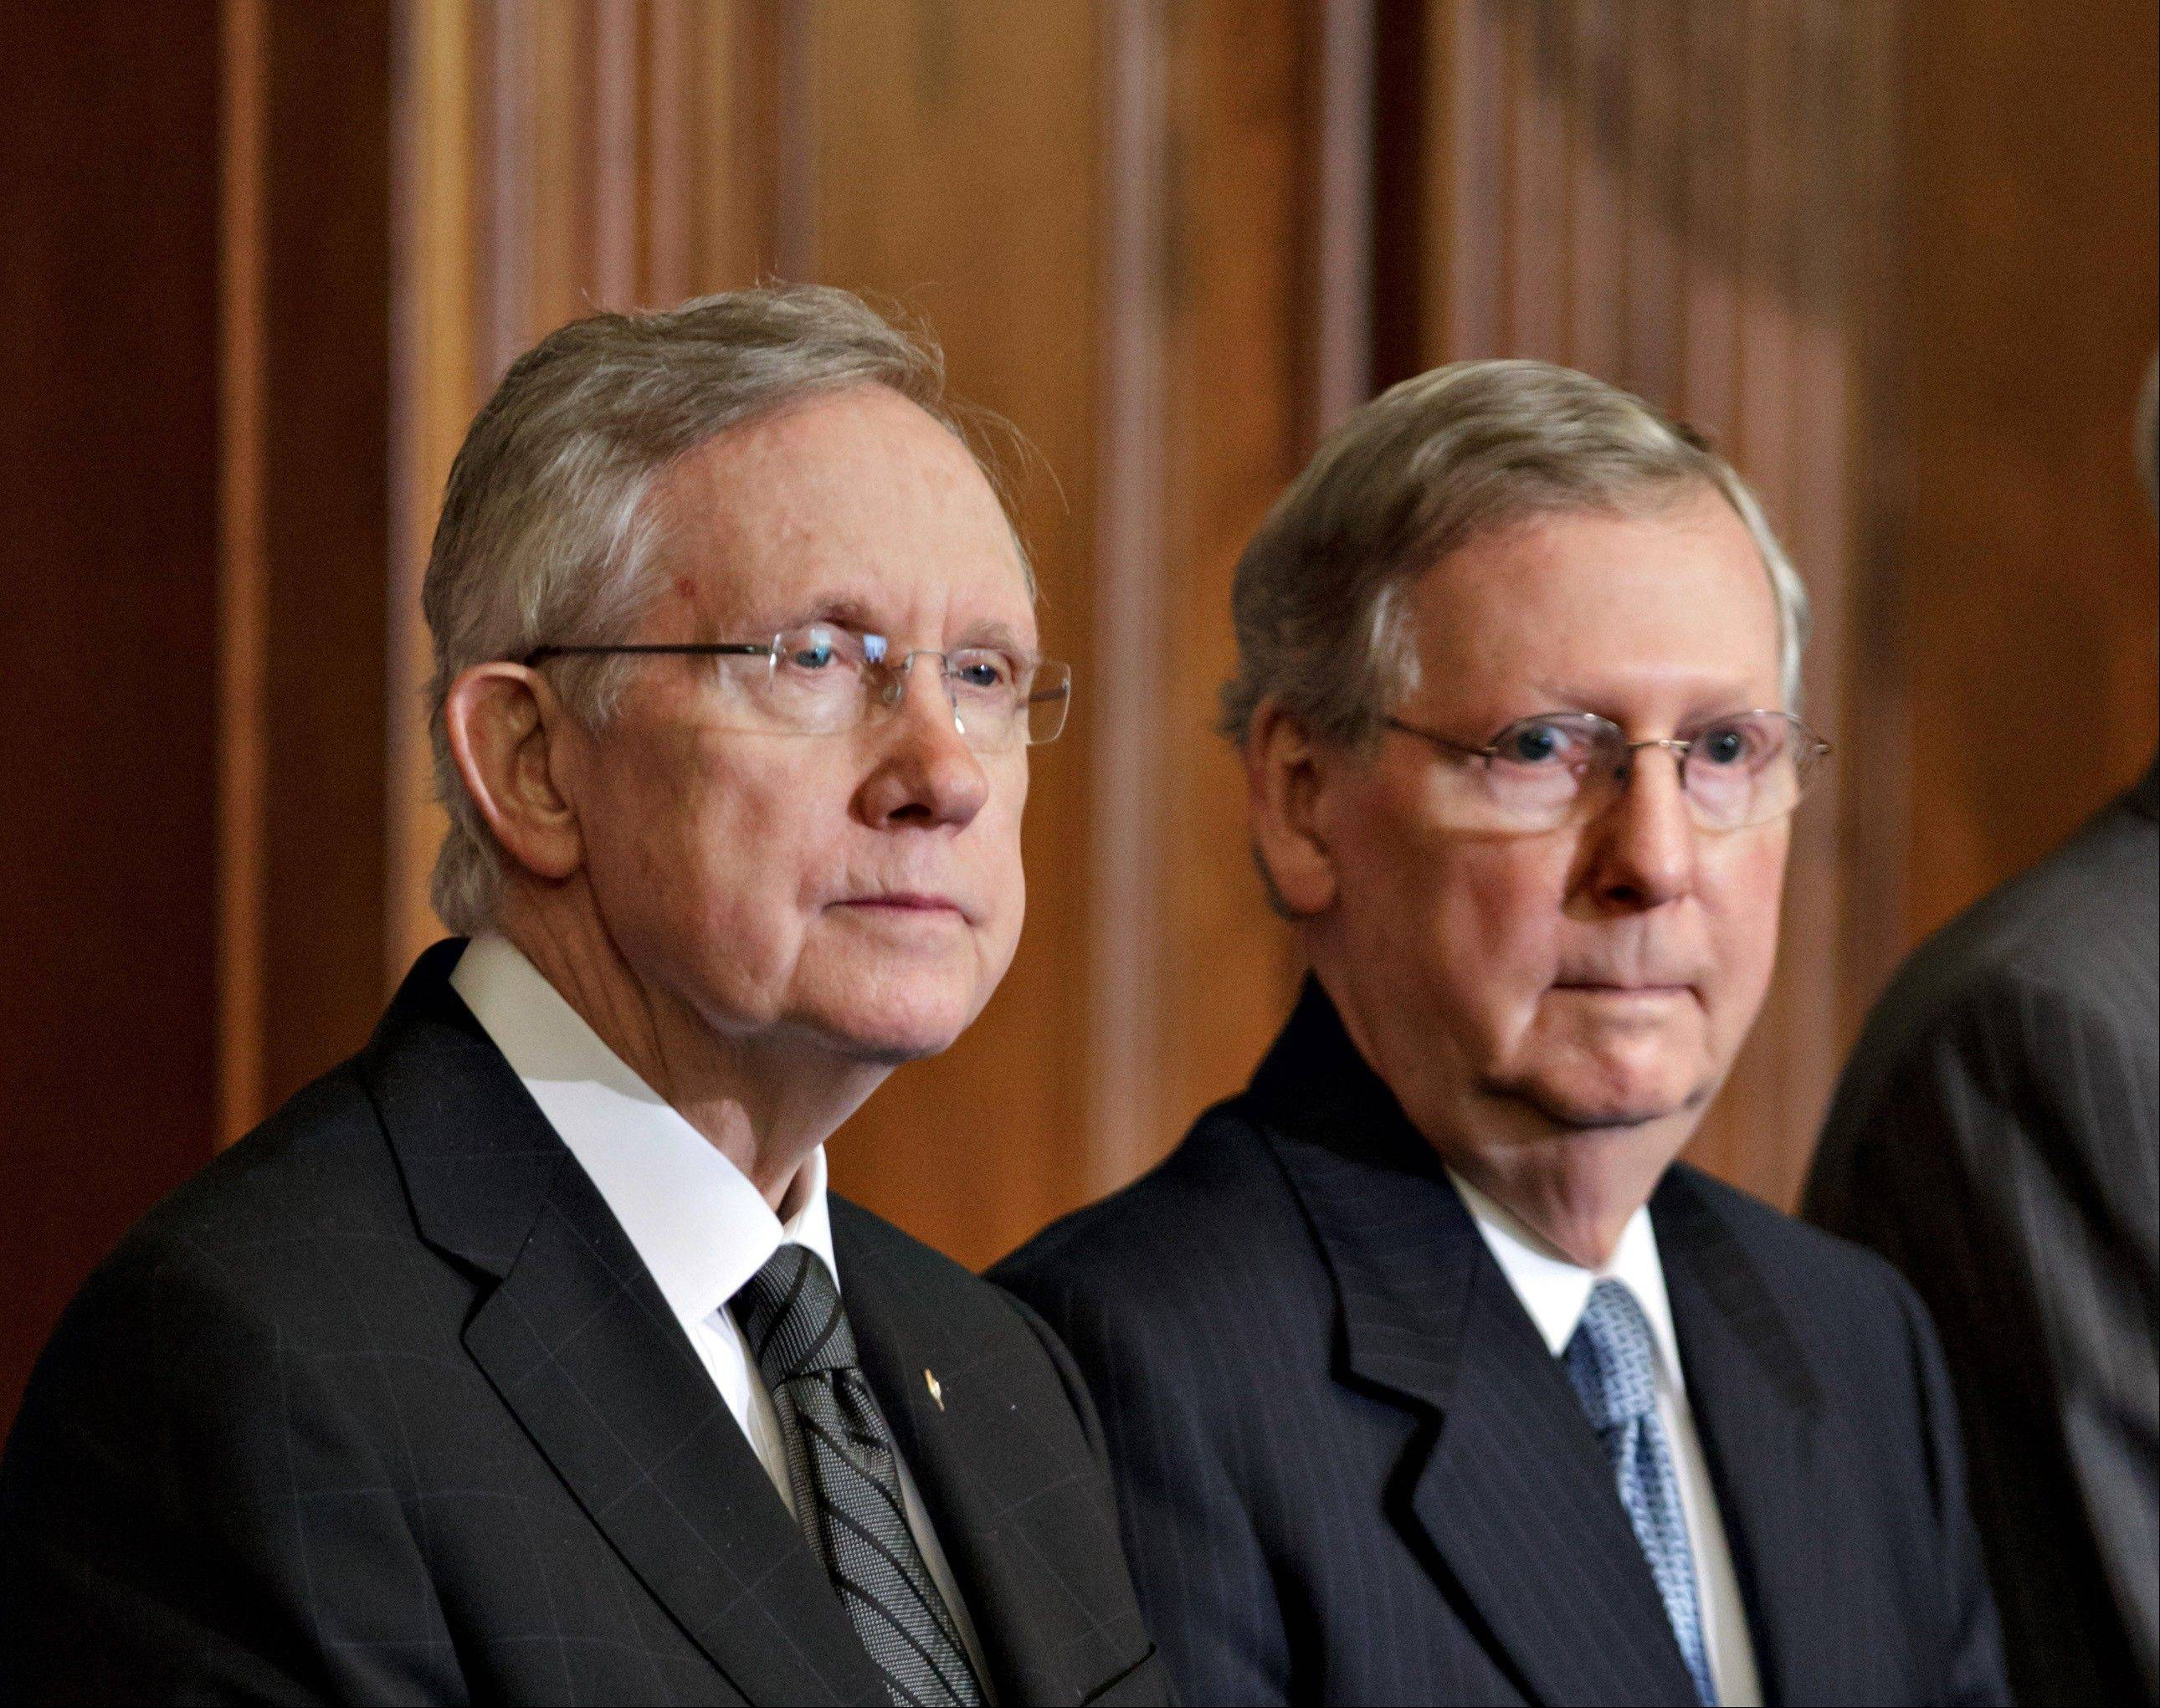 Senate Majority Leader, Democrat Harry Reid of Nevada, and Senate Minority Leader, Republican Mitch McConnell of Kentucky, right, sparred Sunday on a morning news program. Today the Senate holds a rare closed-door session, where all senators will consider a proposal to change Senate rules to remove a 60-vote threshold for President Barack Obama�s nominations to win confirmation.